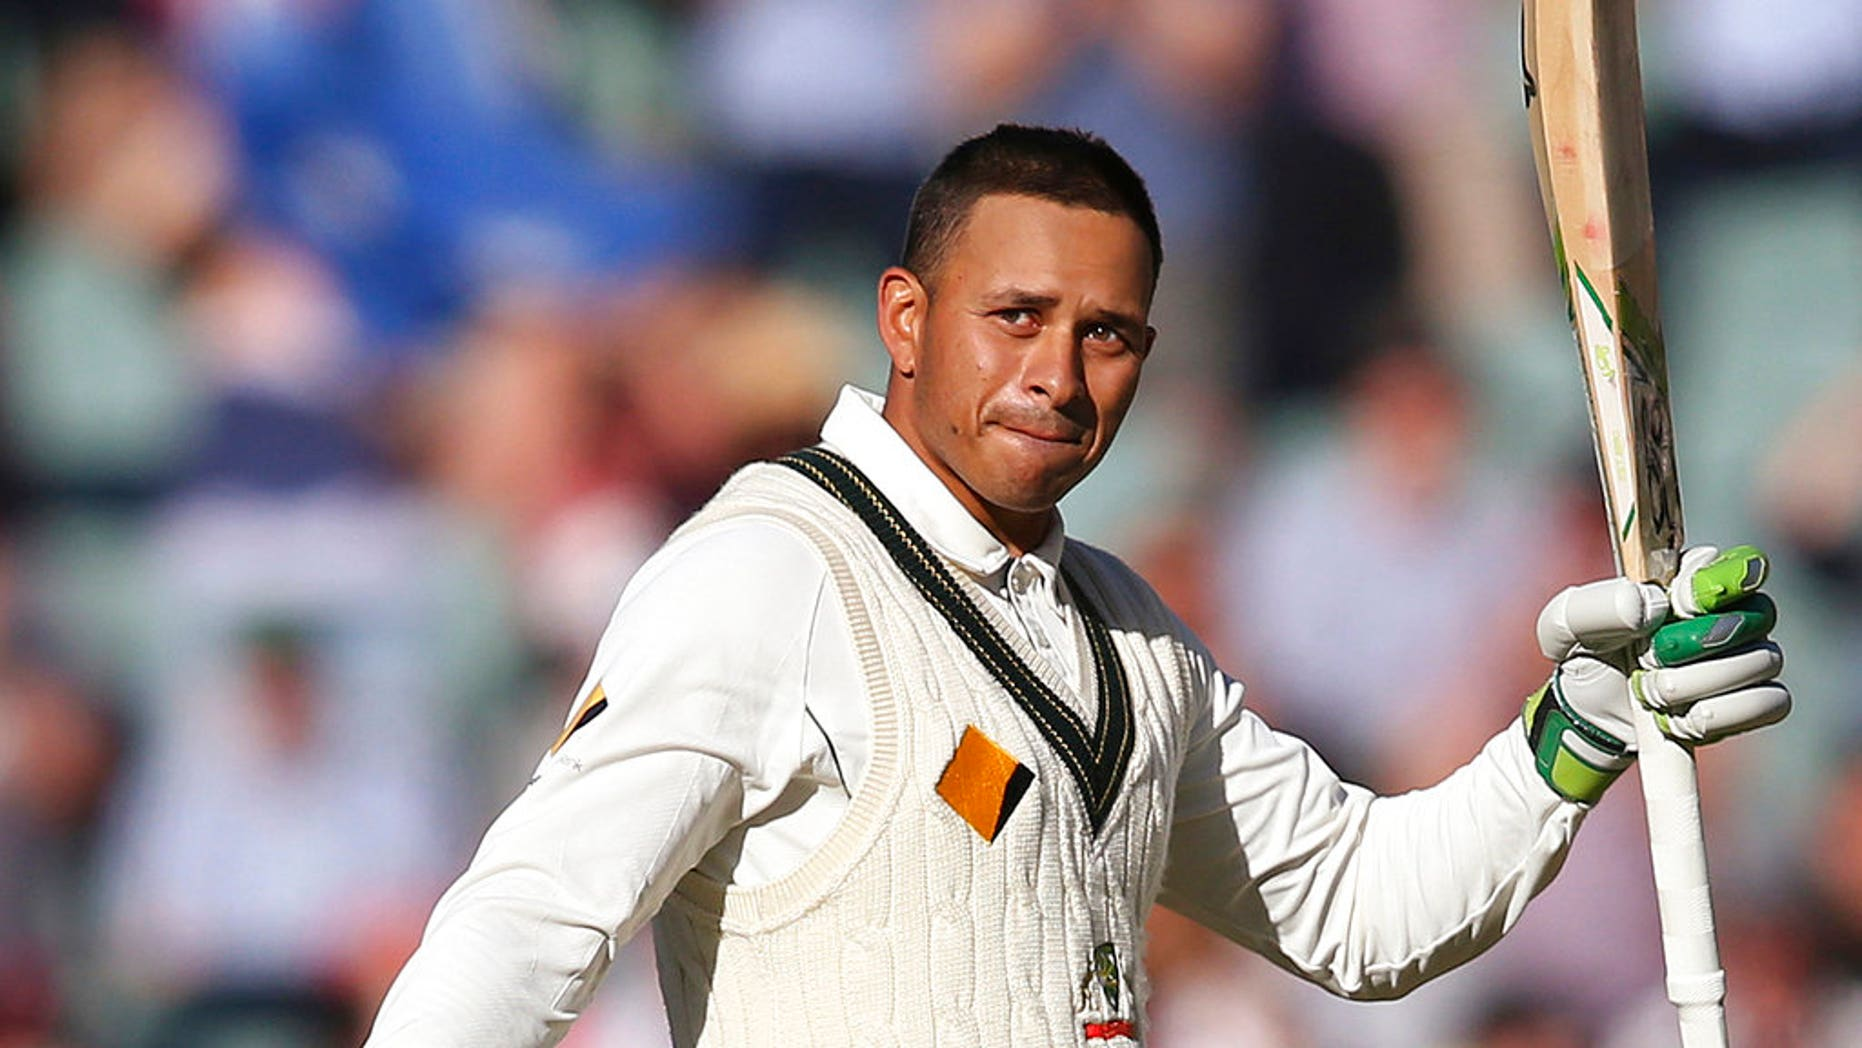 In this Nov. 25, 2016, file photo, Australia's Usman Khawaja celebrates making 100 runs against South Africa during their cricket test match in Adelaide, Australia. Khawaja's brother Arsalan Khawaja has been arrested, Tuesday, Dec. 4, 2018, as part of a counter-terrorism operation focusing on a plot to assassinate former prime minister Malcolm Turnbull.